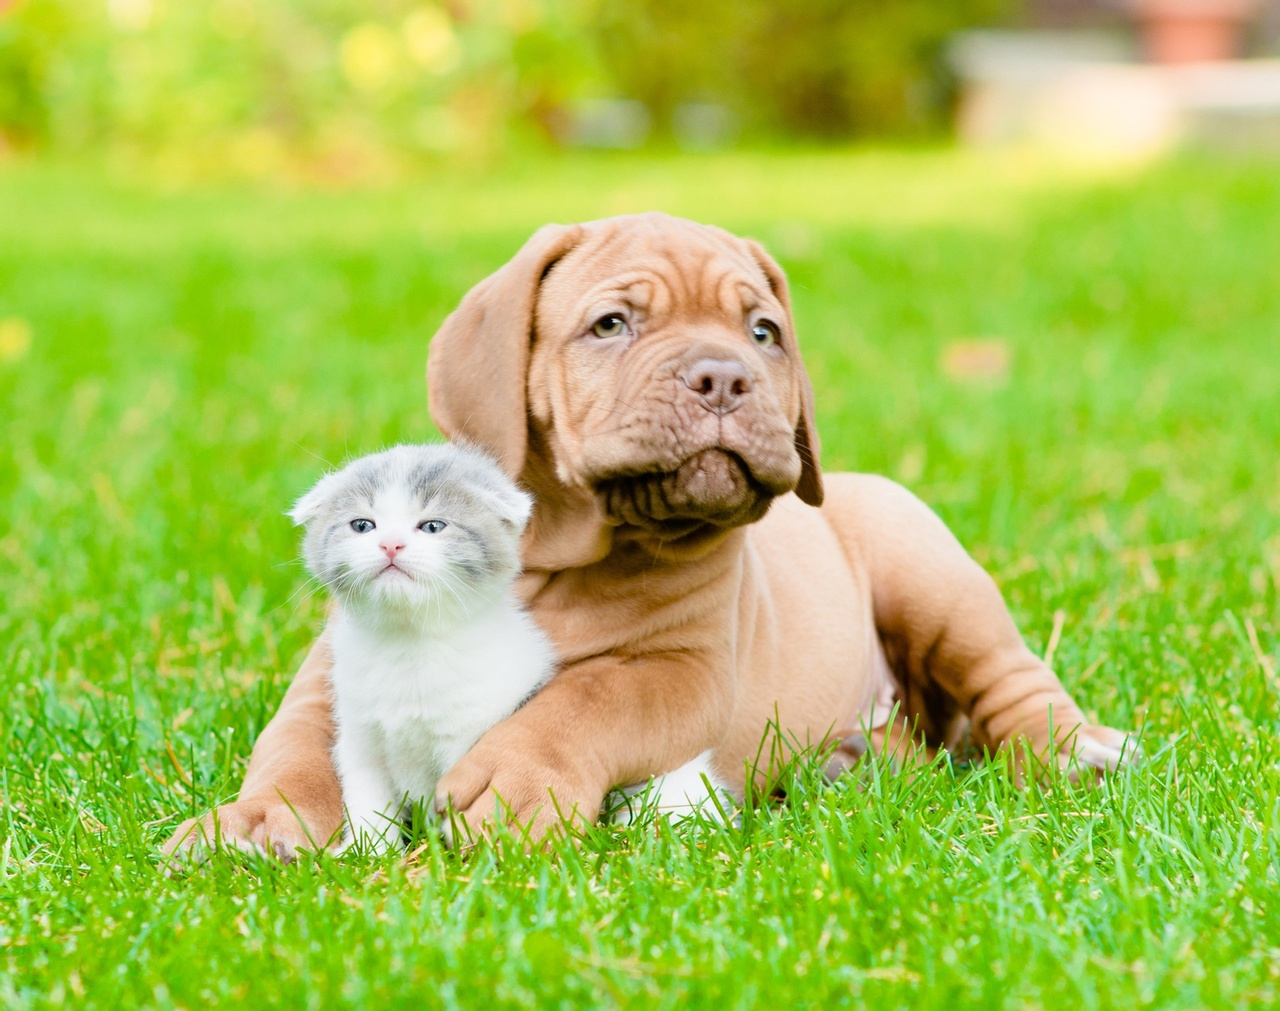 dog-lying-in-grass-with-kitten